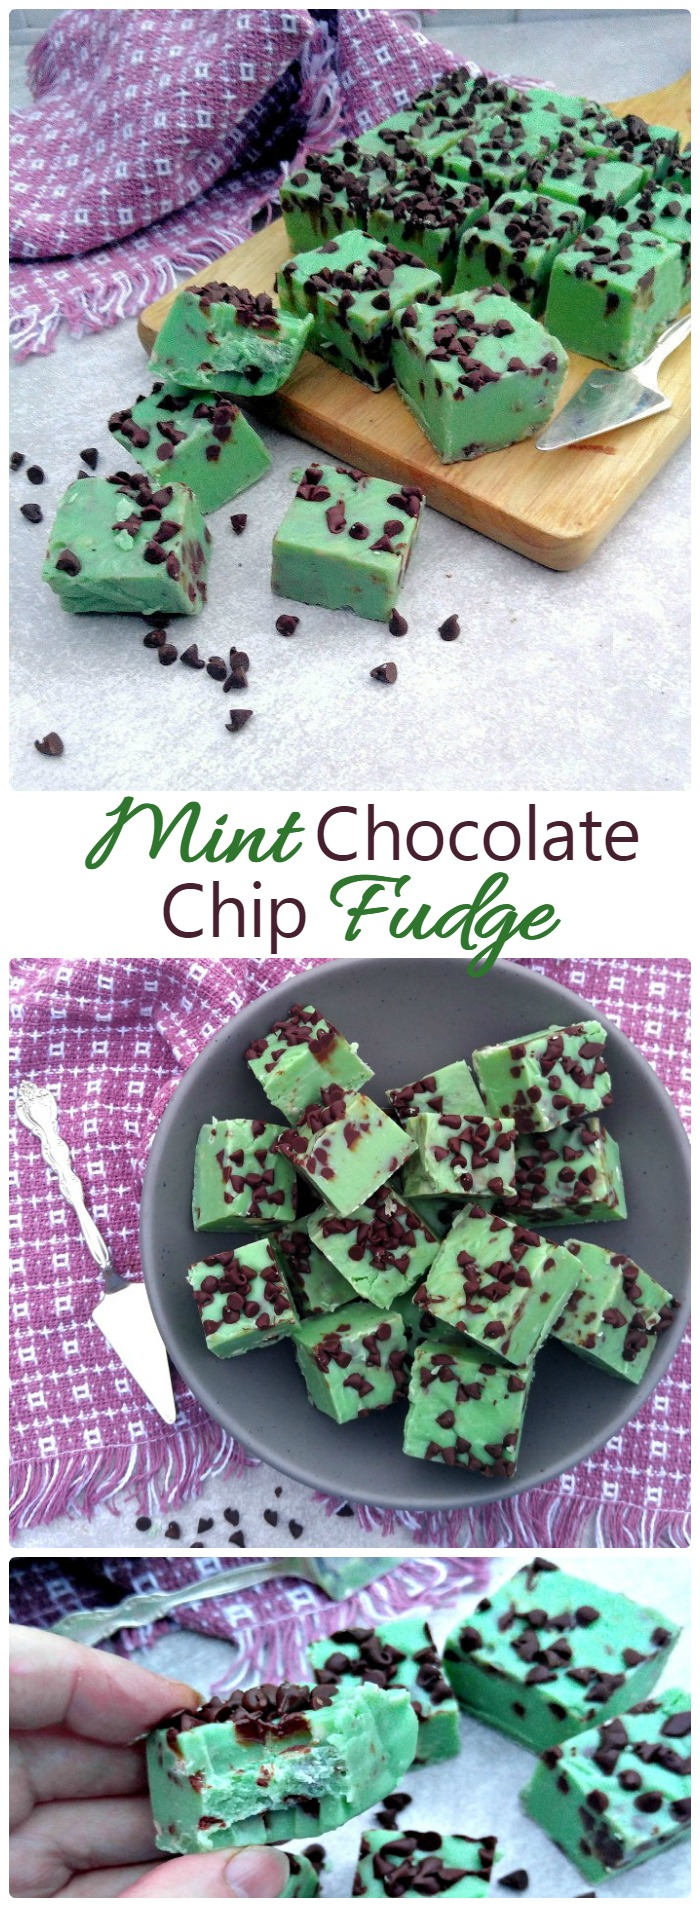 This mint chocolate chip fudge has a rich decadent flavor and is perfect for any special occasion